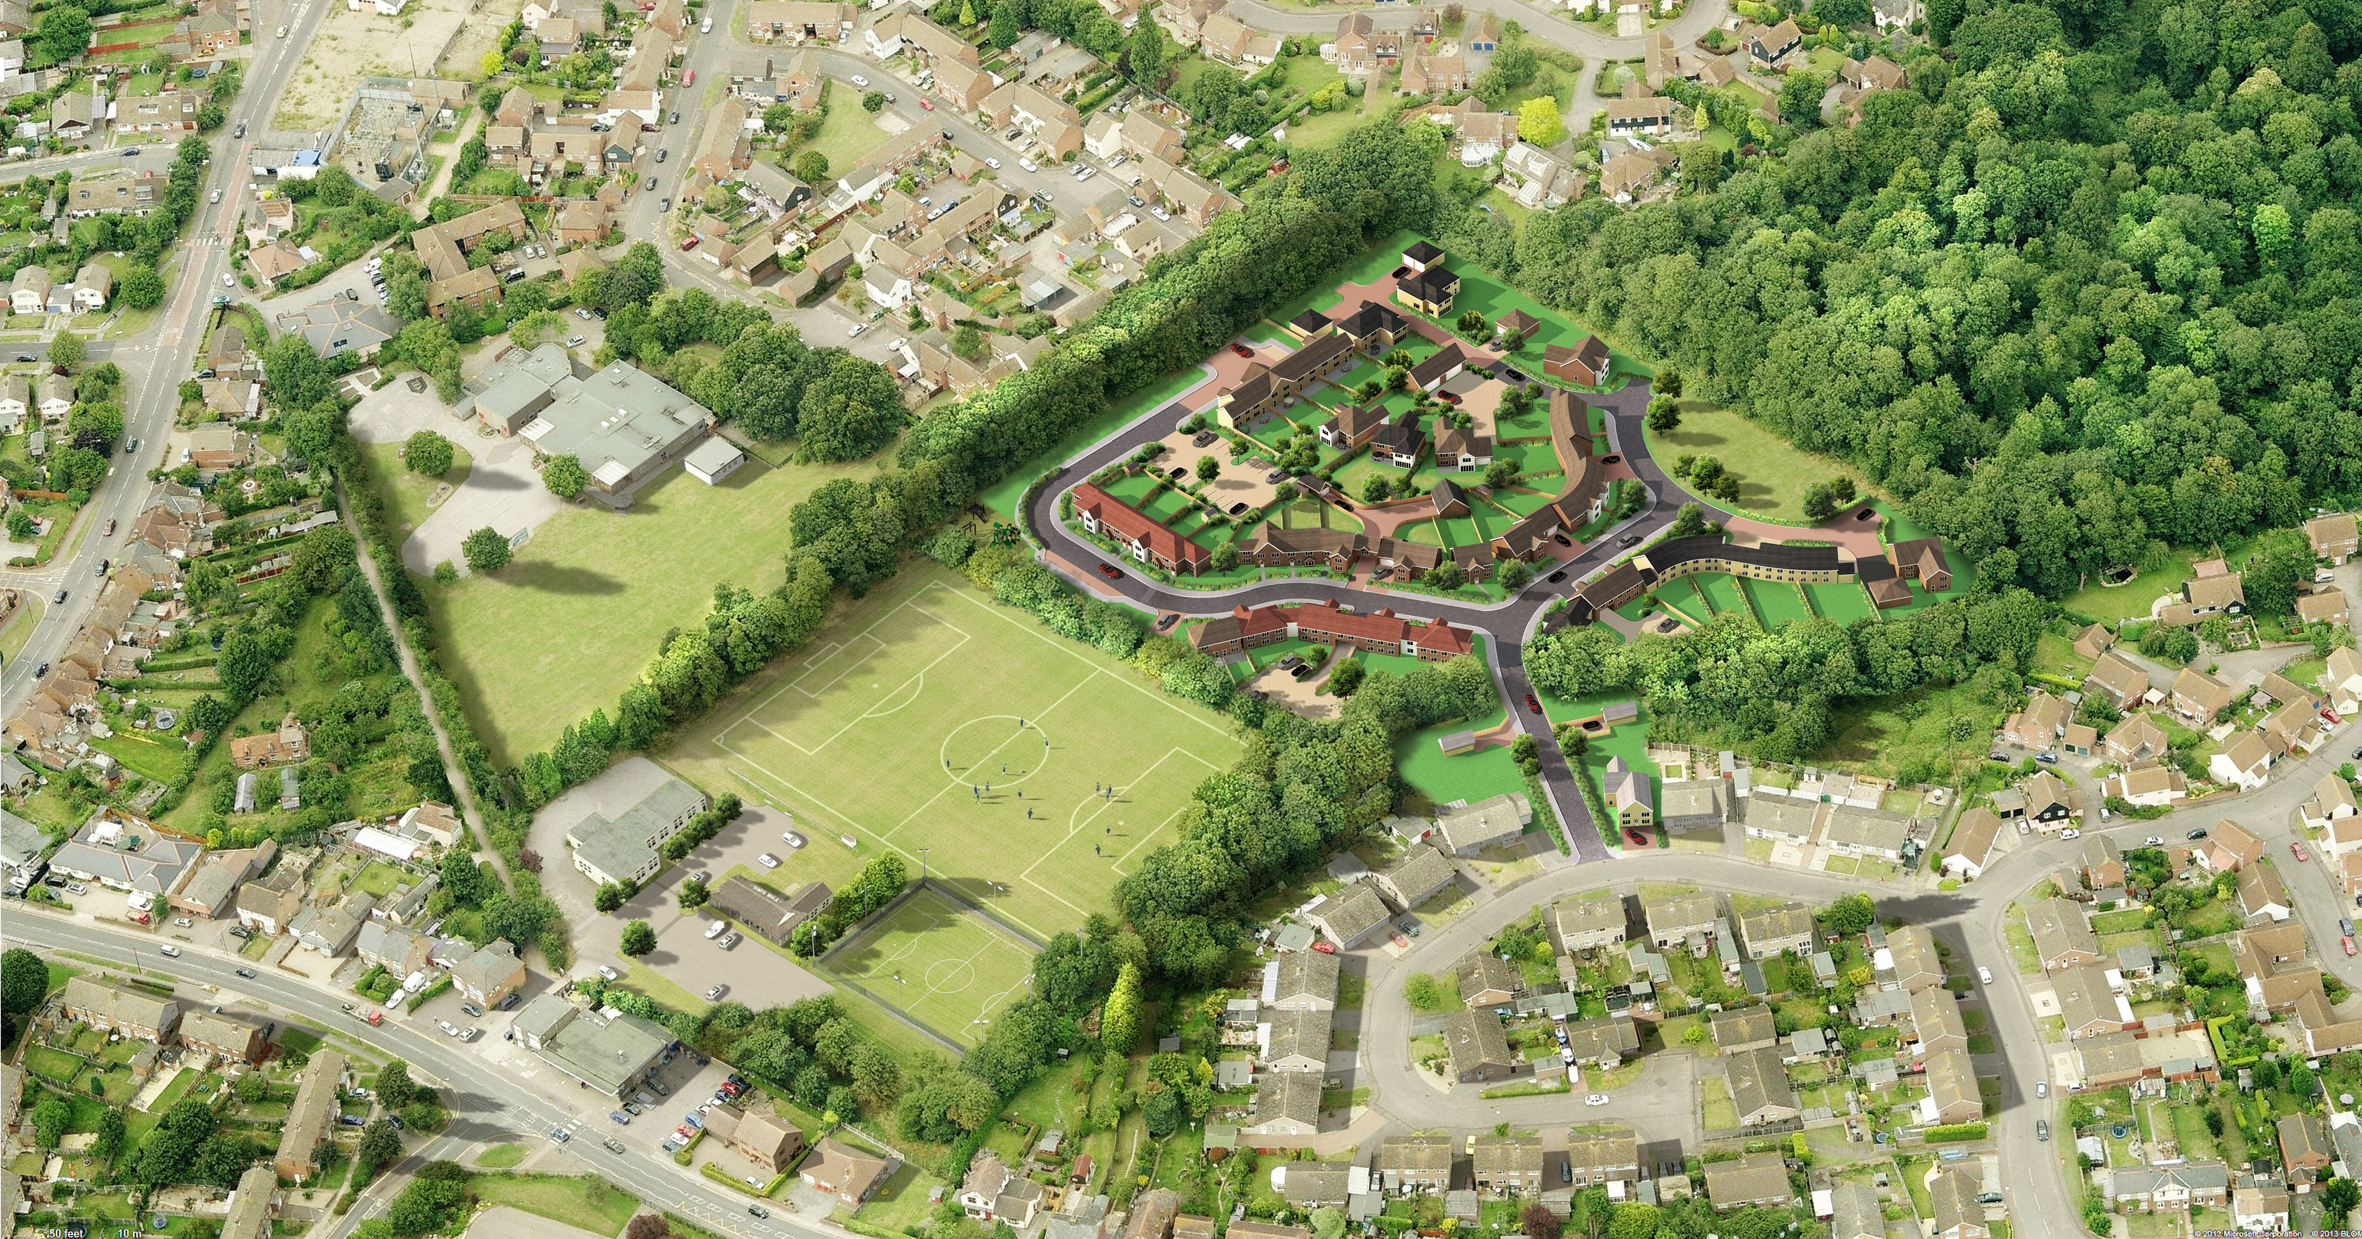 Controversial football pitch homes plans thrown out by planners